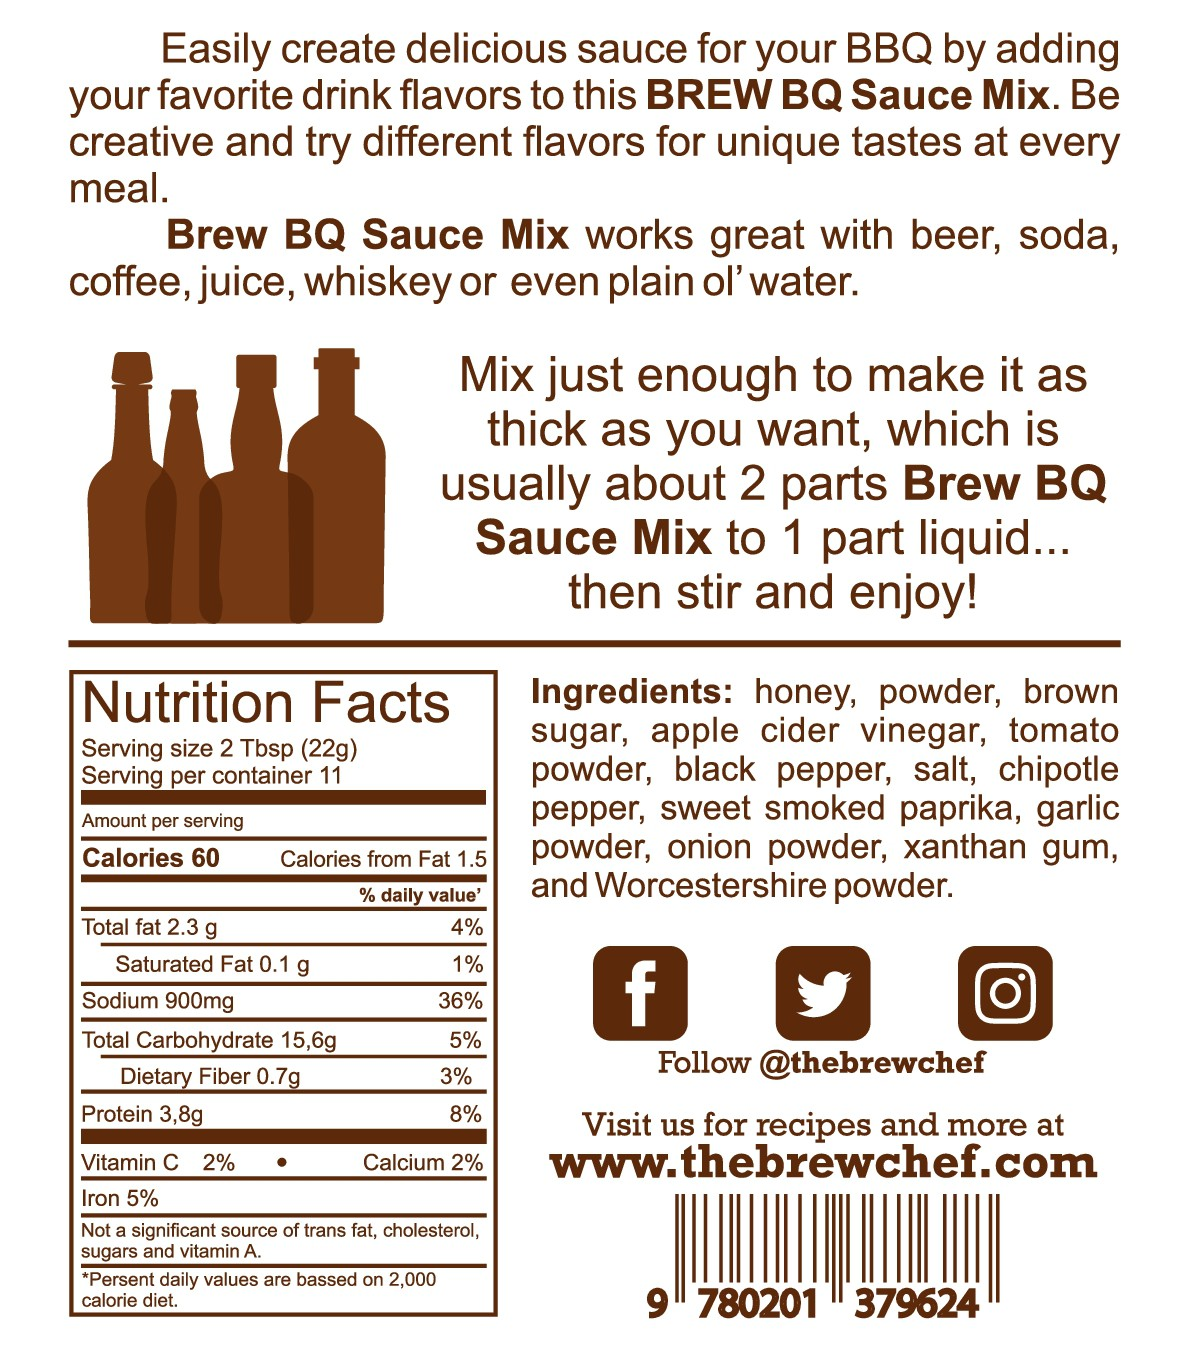 Updated BrewBQ packaging and website components